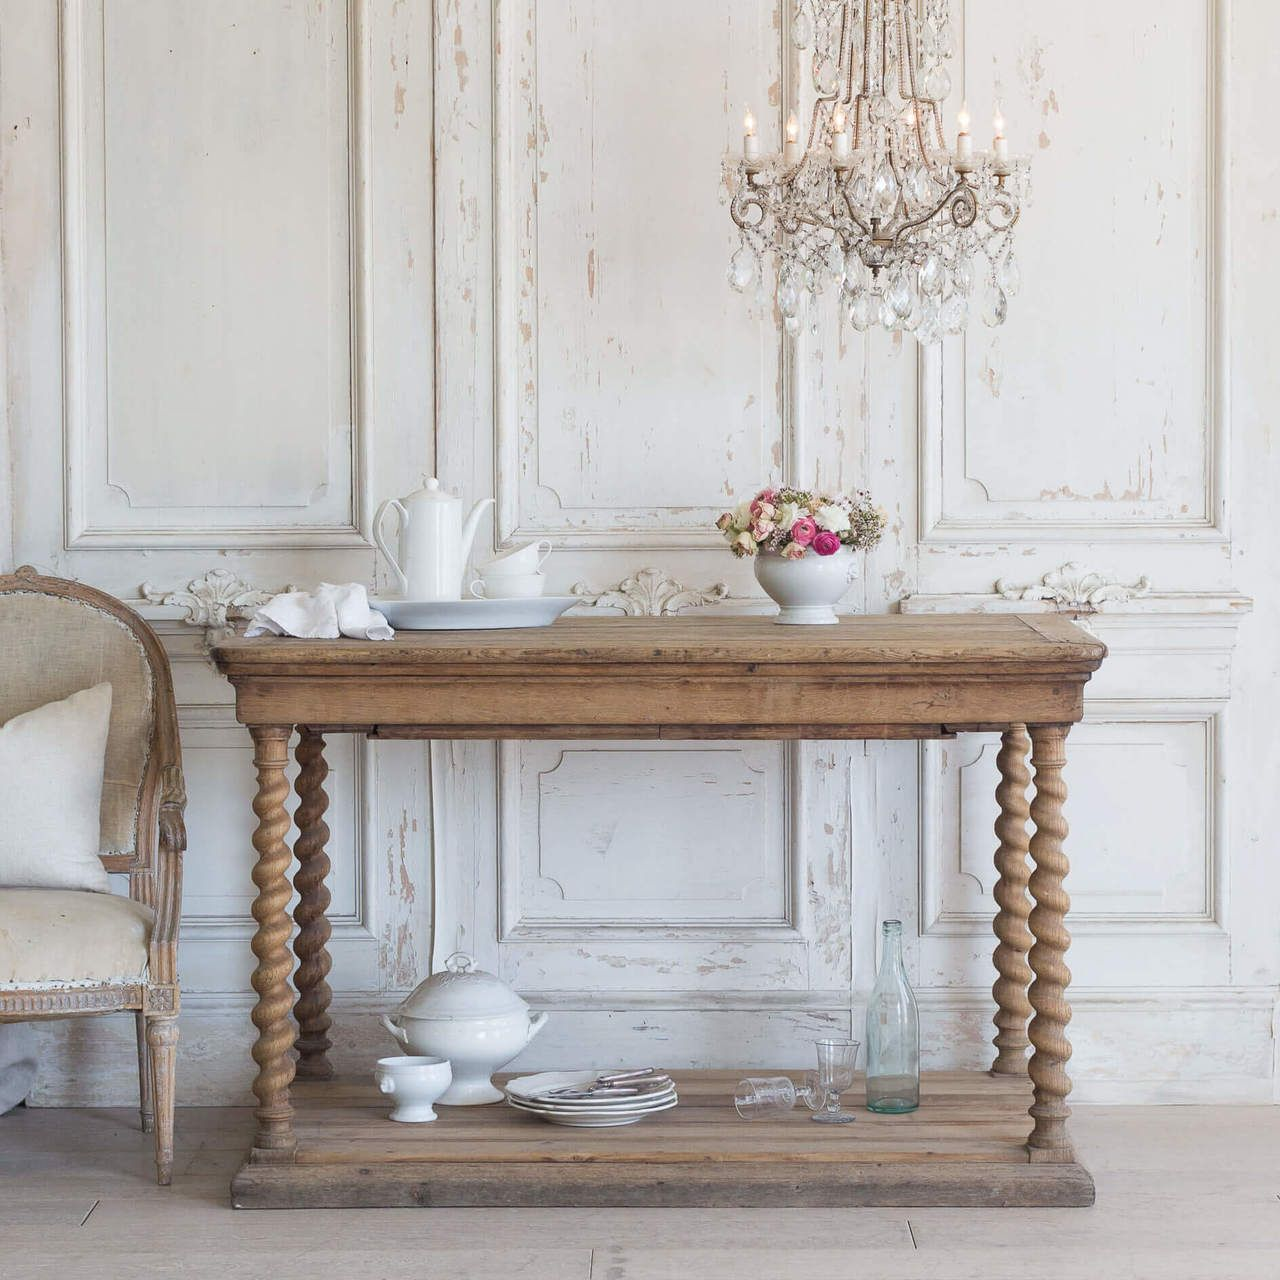 Eloquence Antique French Oak Wood Drapery Table Tvp09046 55 W 44 H 35 D Natural Wood Console Table Small Console Tables Antique Table